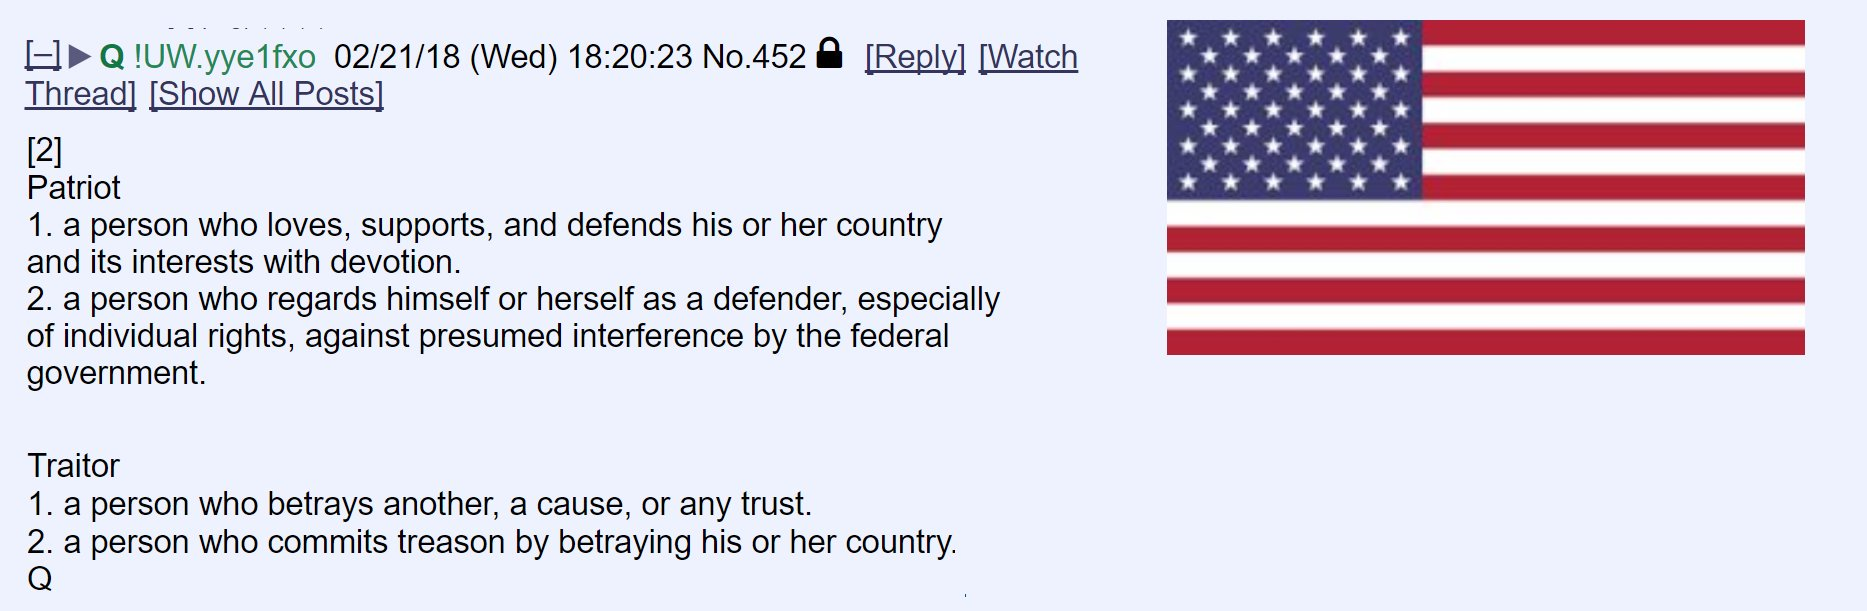 QAnon March 18 2019 - PATRIOT VS. TRAITOR